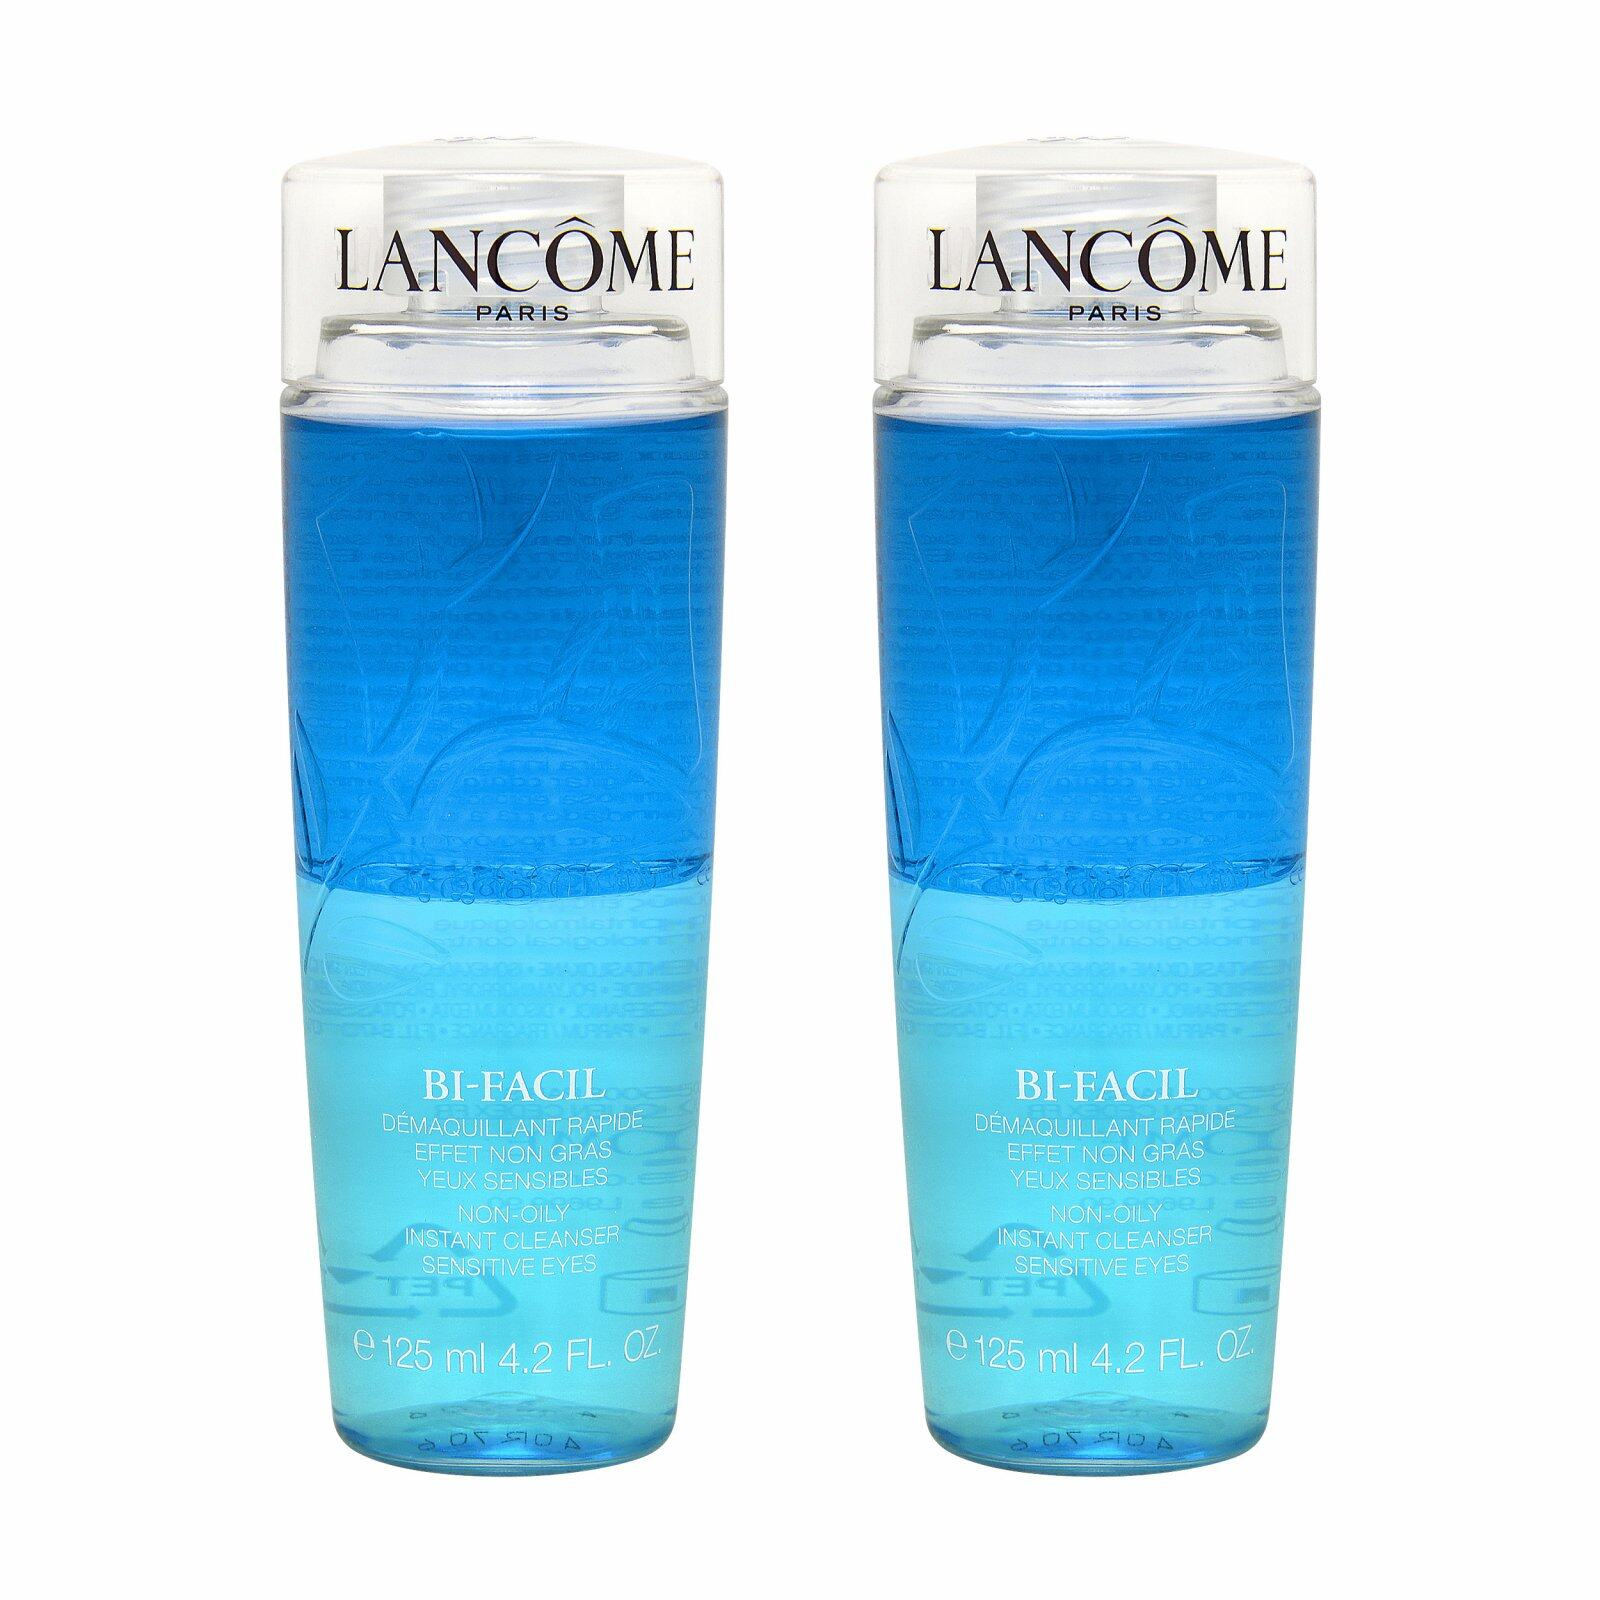 2 X LancÔme Bi-Facil Non Oily Instant Cleanser Sensitive Eyes 4.2oz, 125ml - Intl.